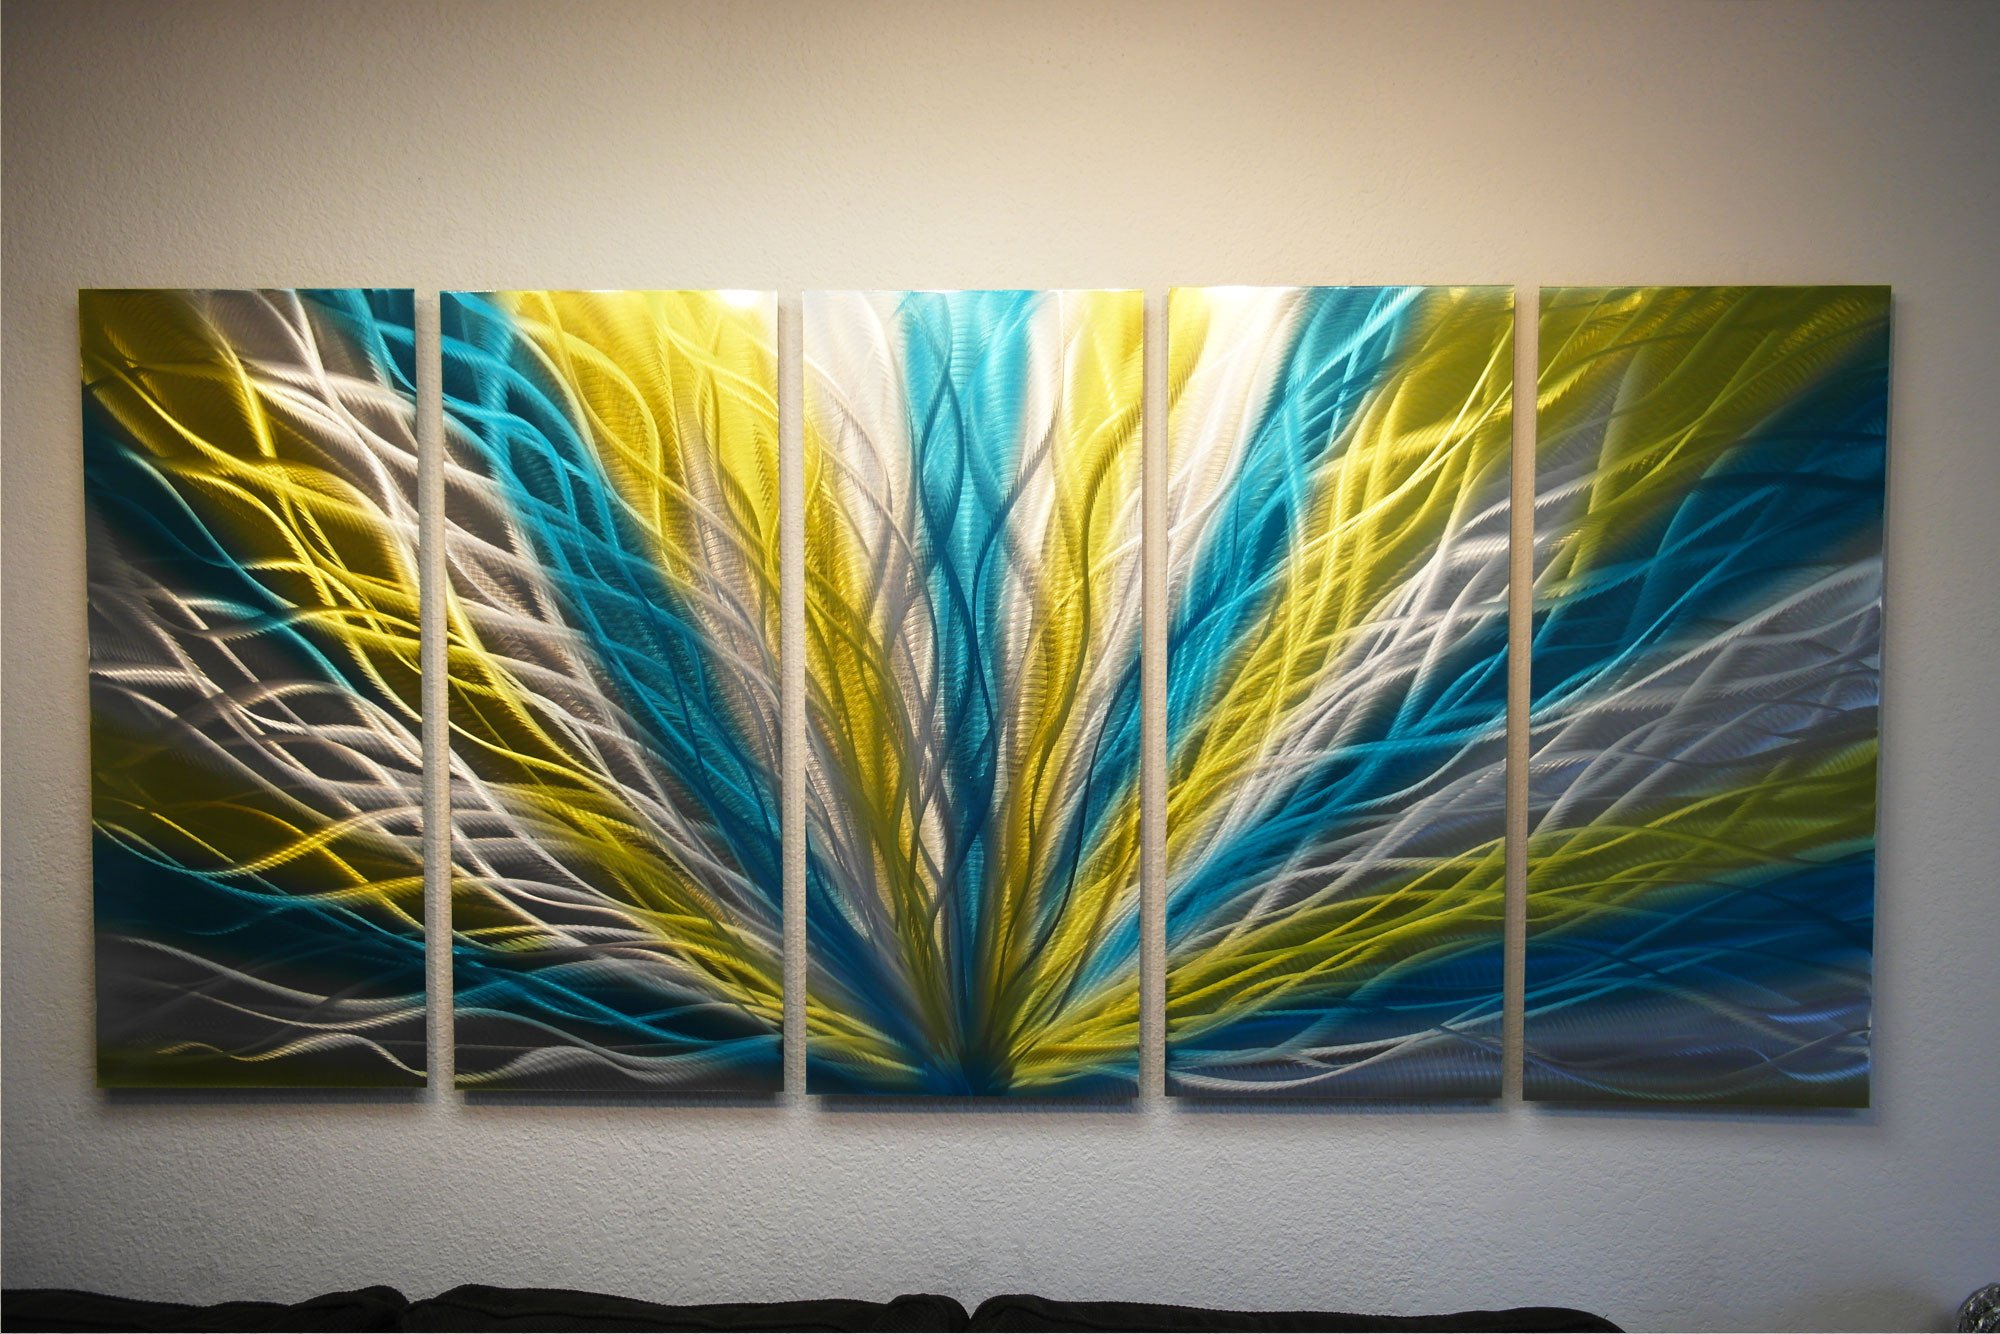 Blue and Yellow Wall Decor Awesome Radiance Blue Yellow 36x79 Metal Wall Art Abstract Sculpture Modern Decor · Inspiring Art